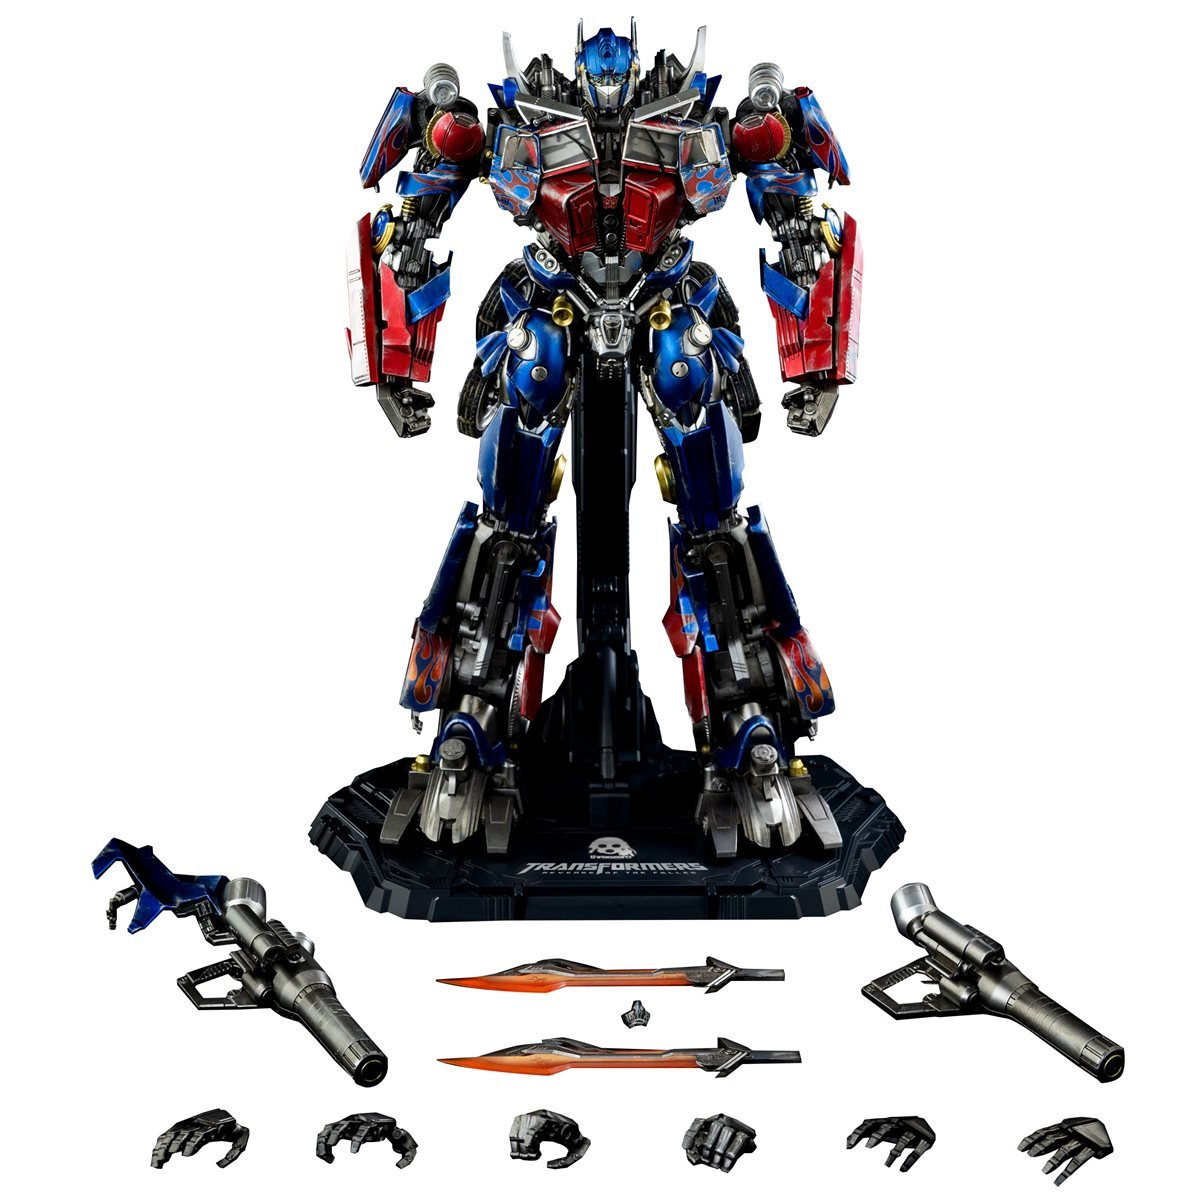 Transformers: Revenge of the Fallen Optimus Prime DLX Figure Pre-Orders